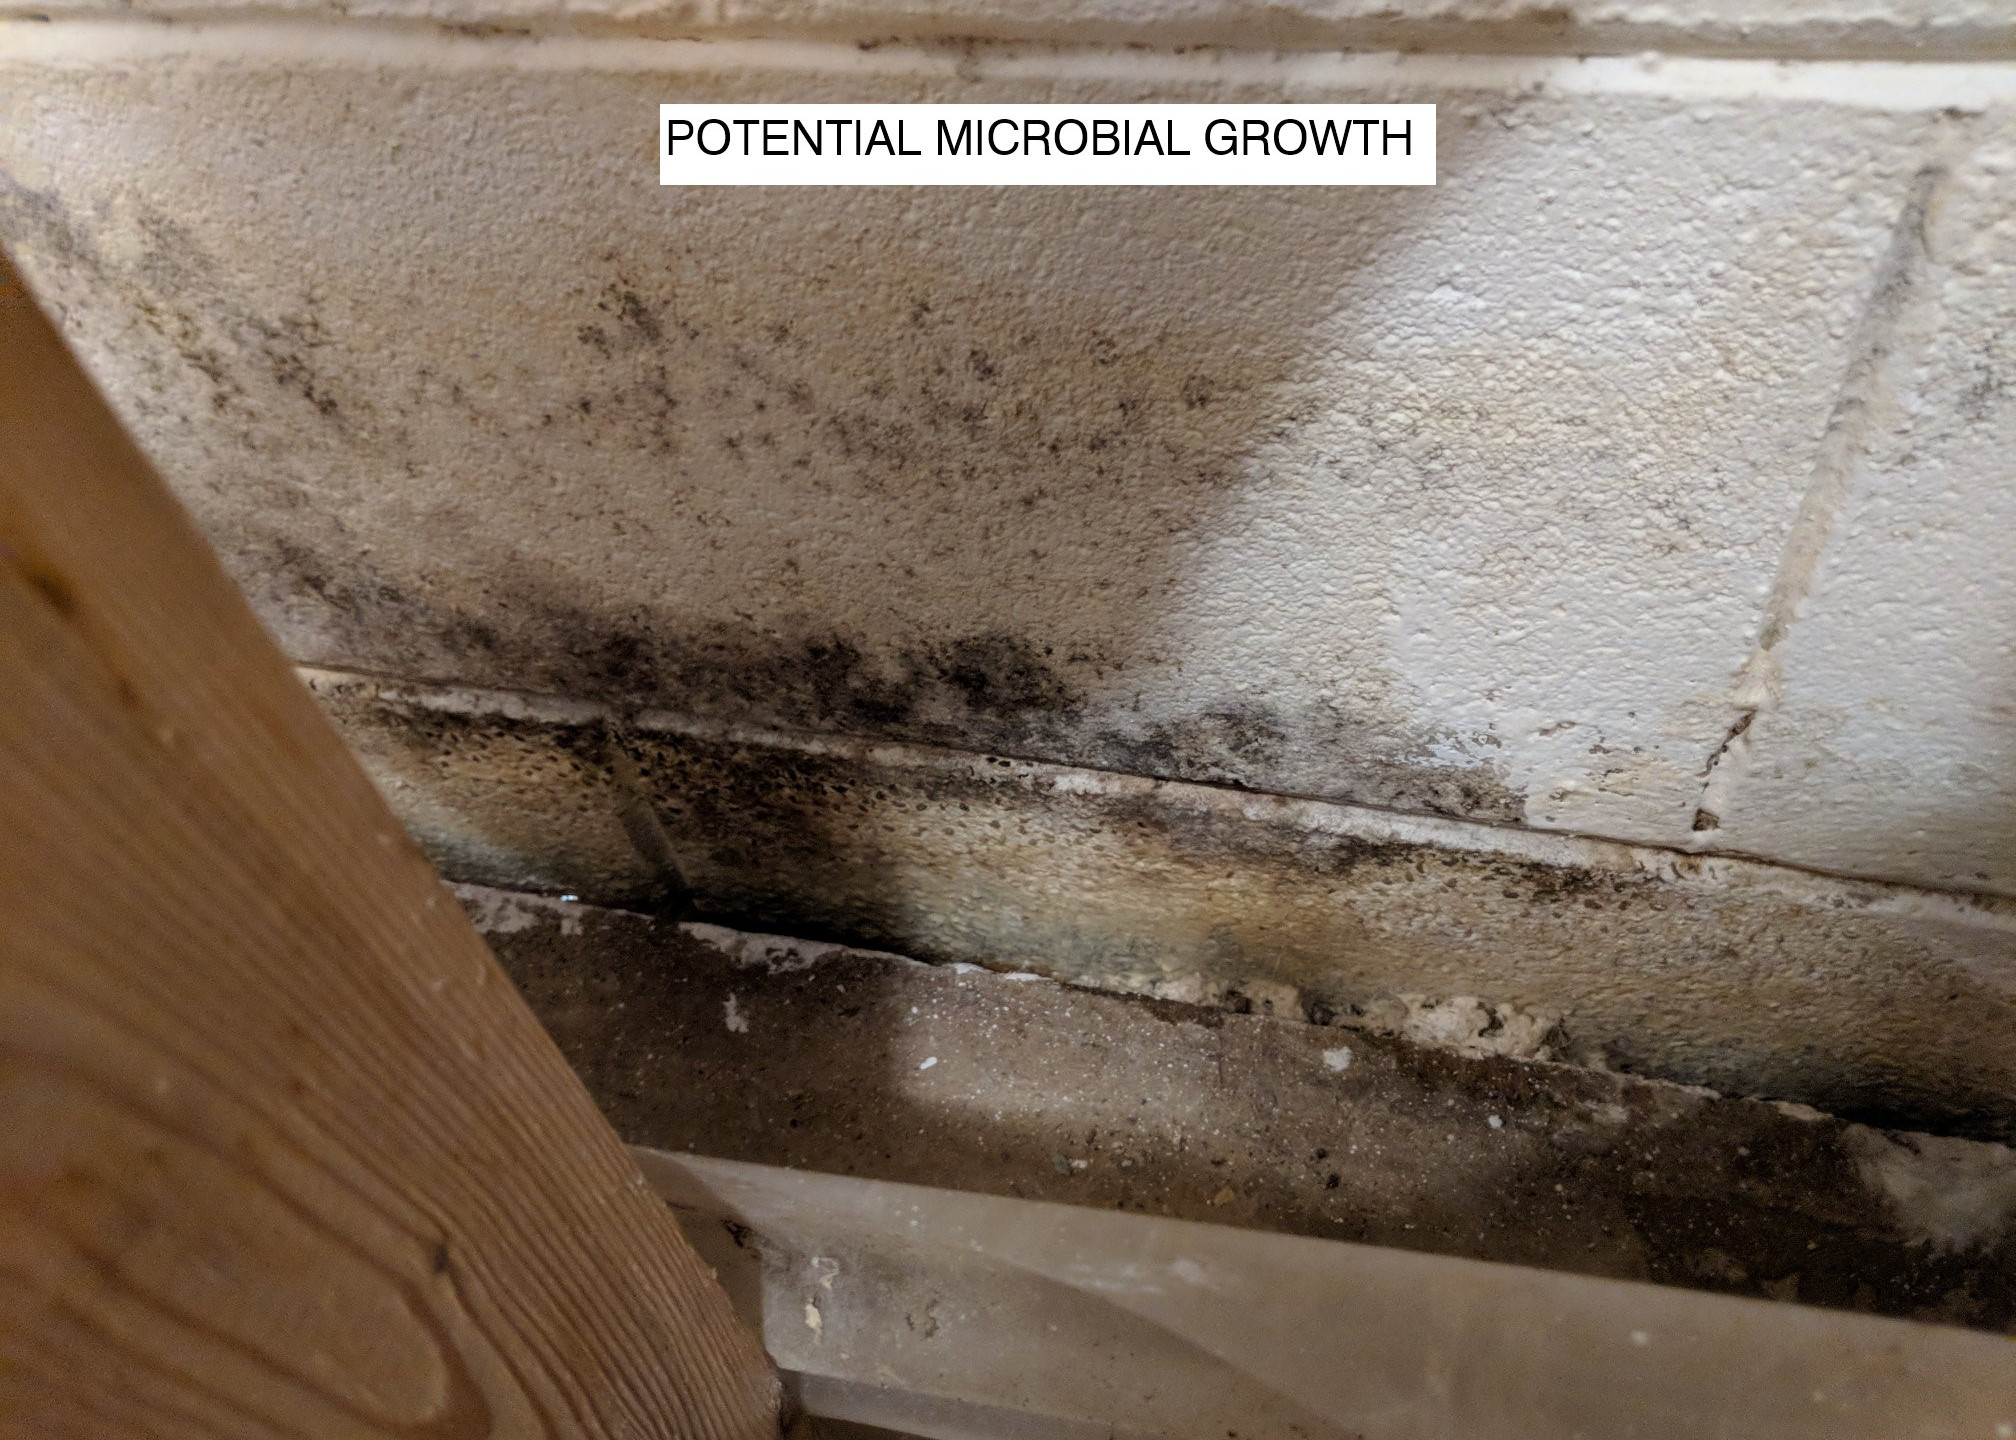 Potential Microbial Growth